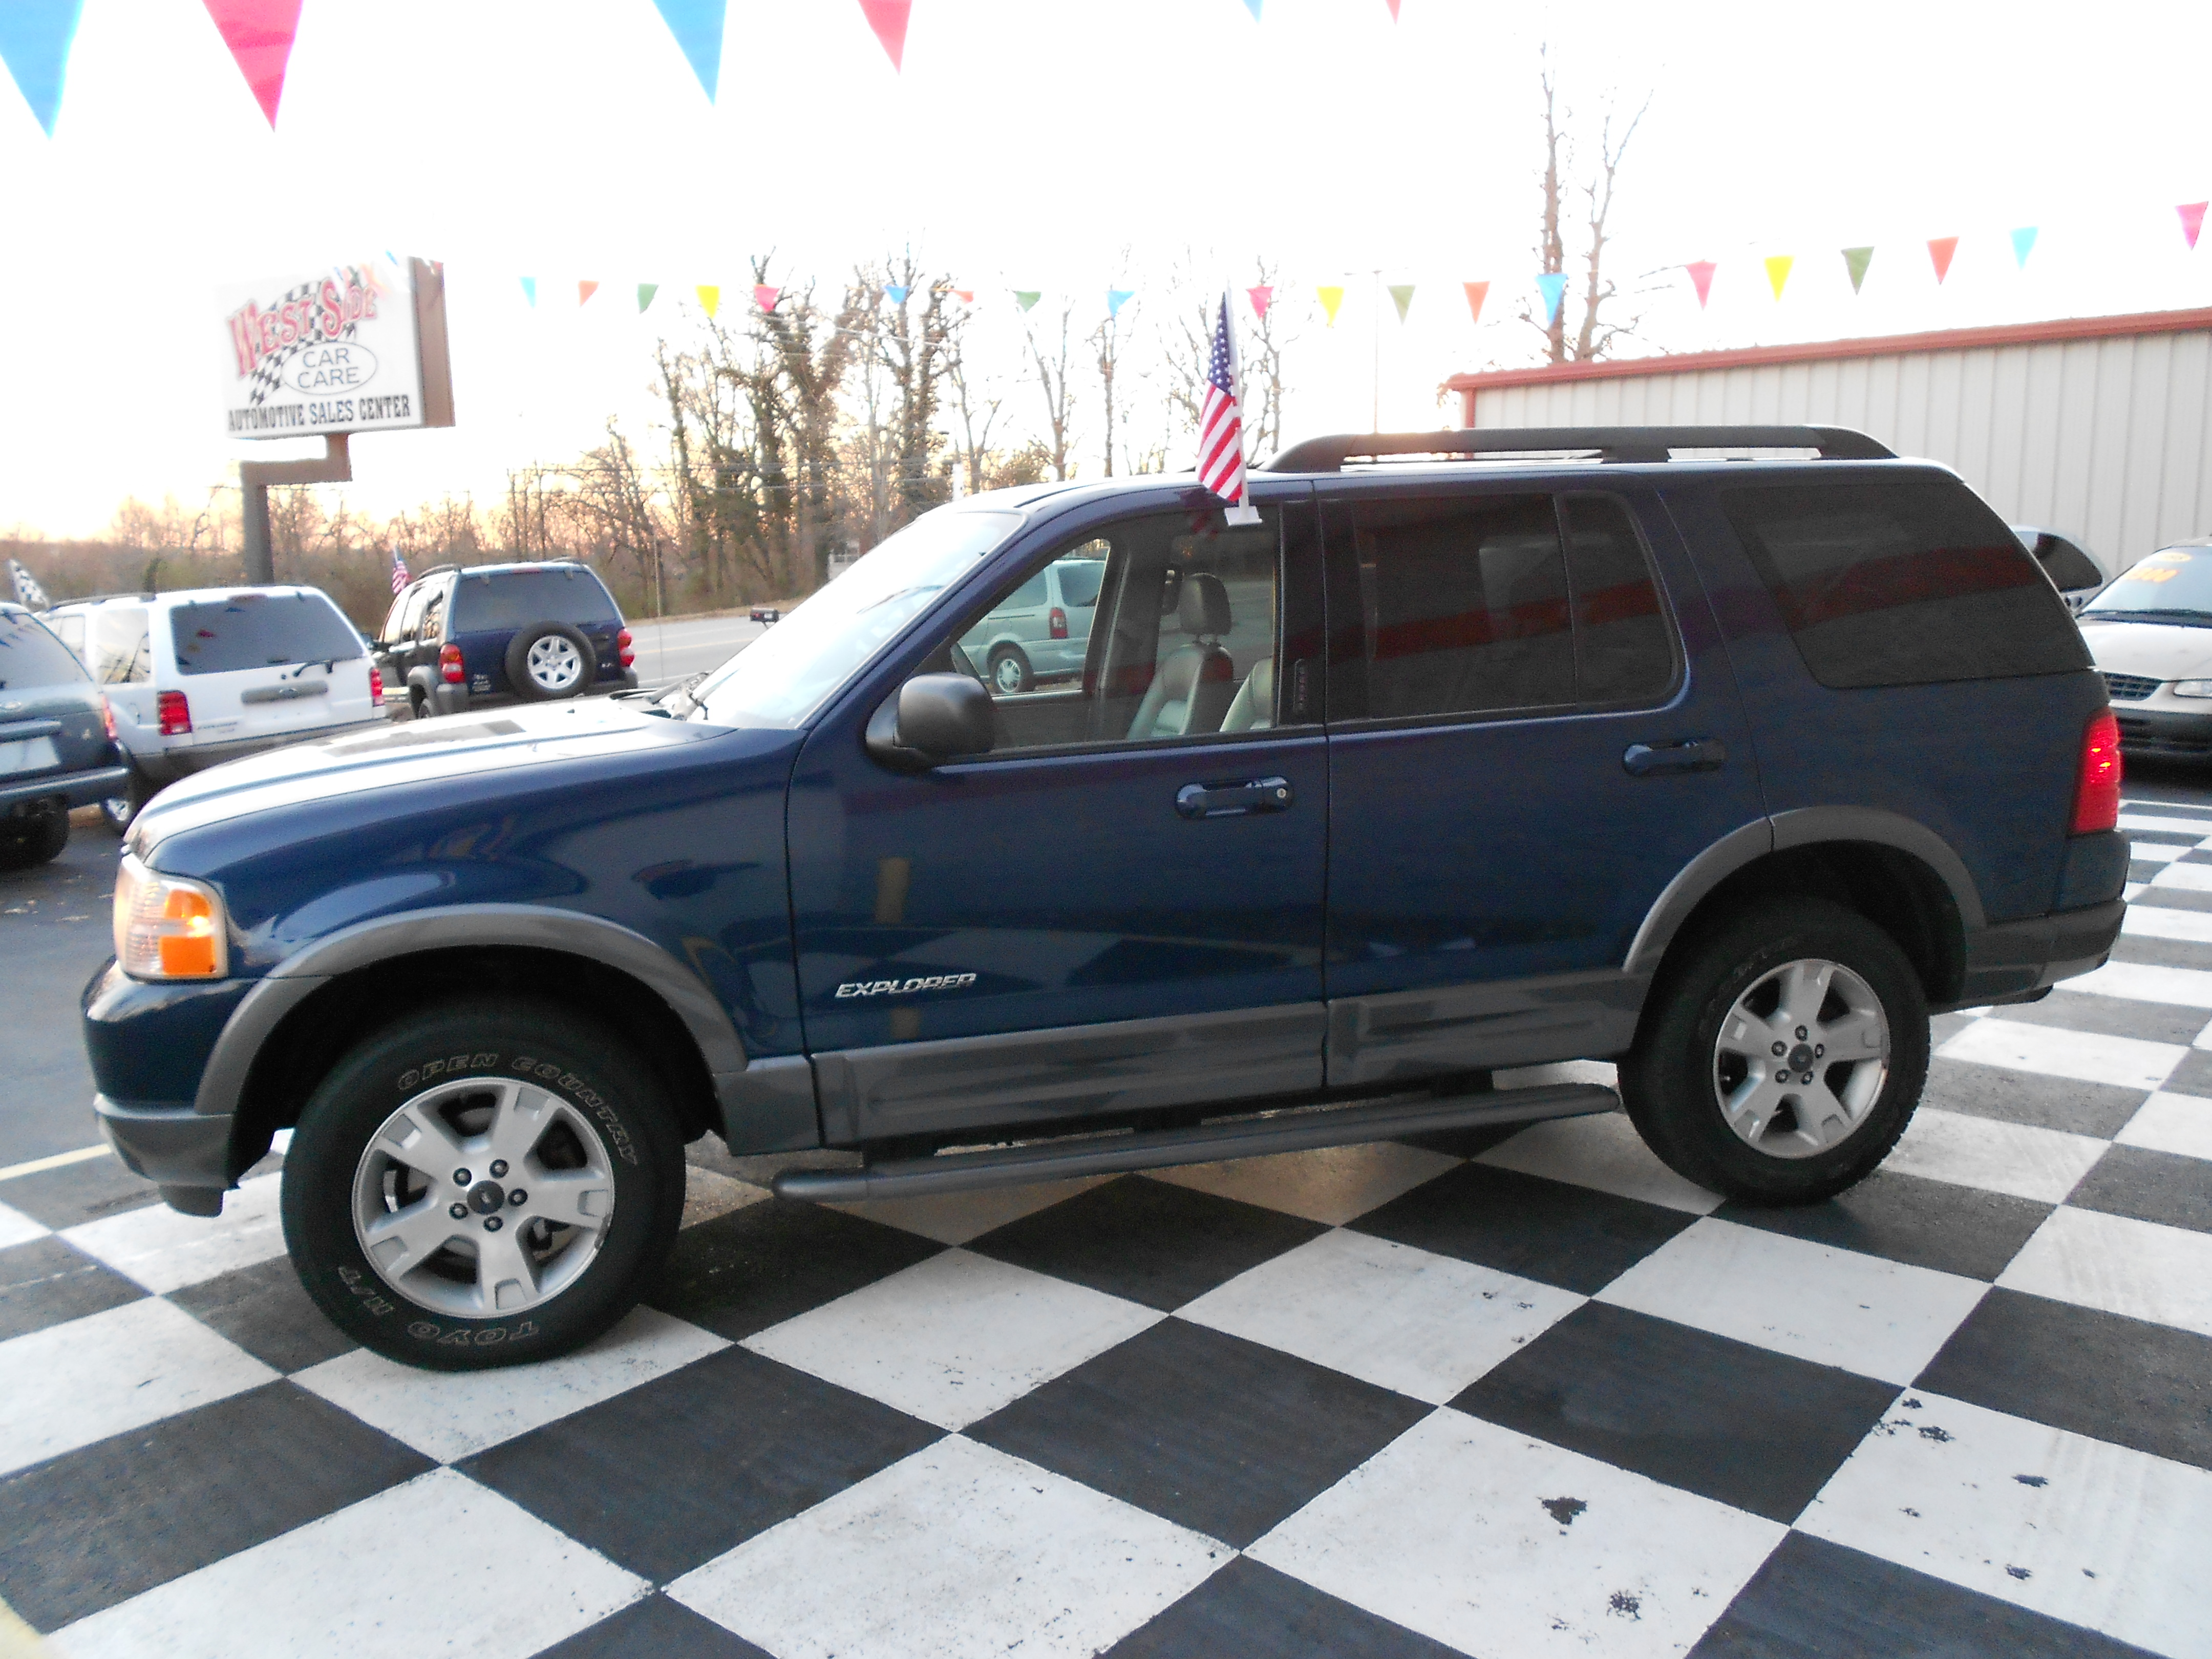 2005 Ford Explorer Xlt 4x4 3rd Row Seating Buffyscars Com